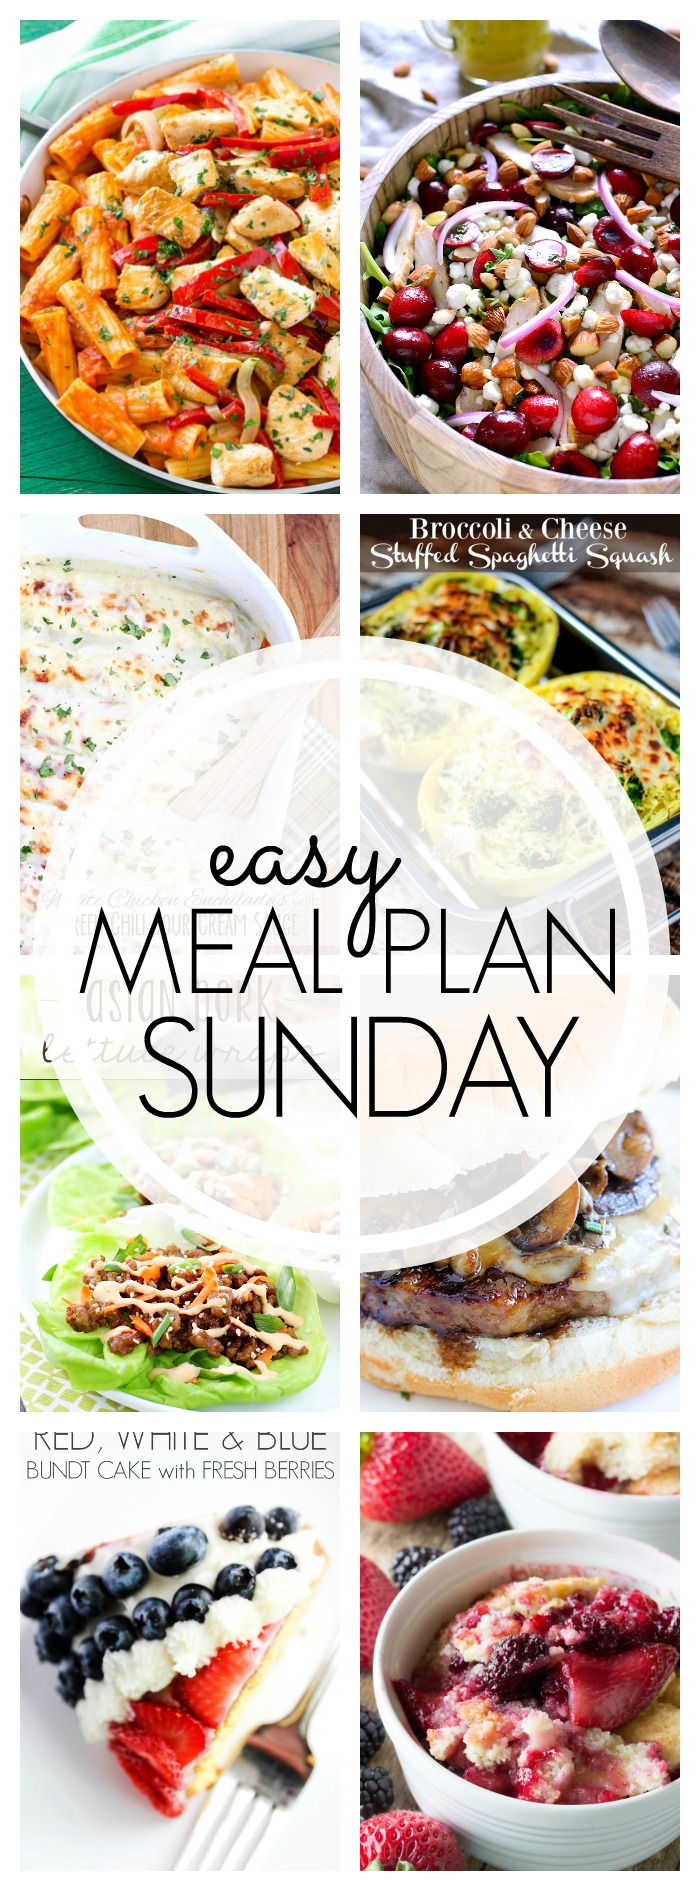 EASY MEAL PLAN – Week 51 - 7 delicious dinners and 2 desserts!